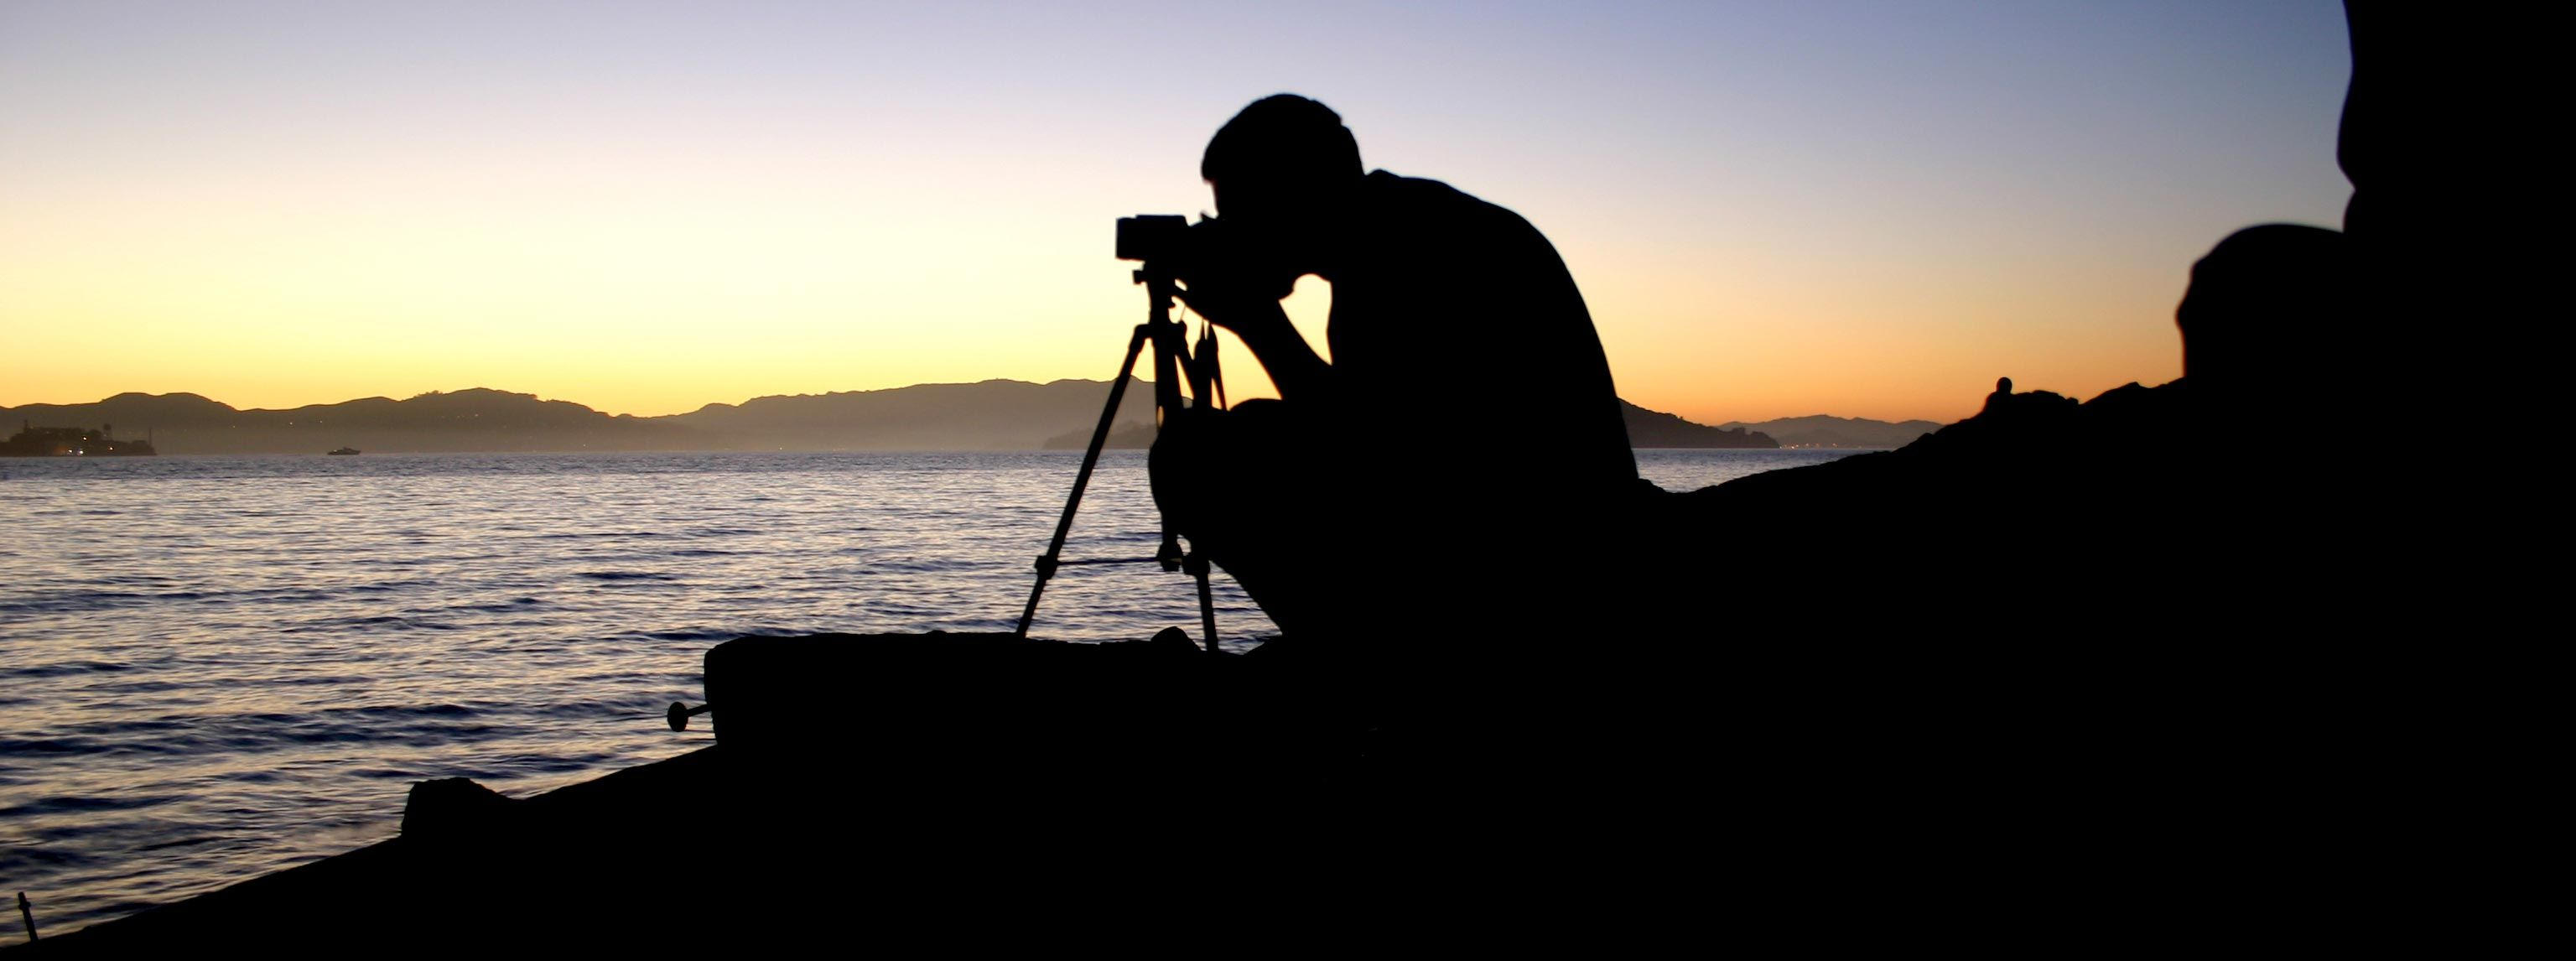 The Top Ten Richest Photographers In The World